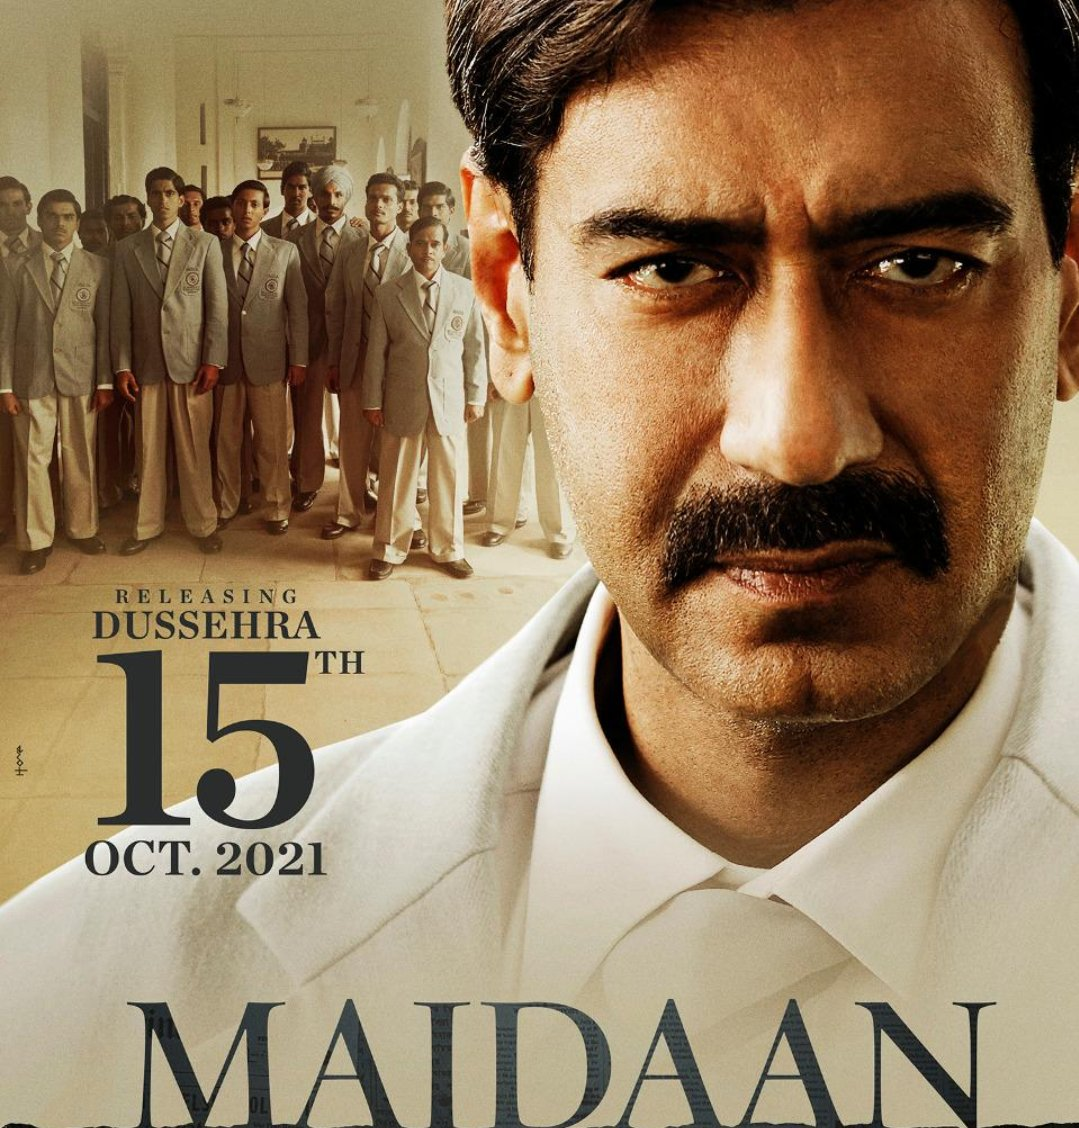 Ajay Devgn's #Maidaan to hit the theatres on Dussehra next year; shooting for the film will begin in January 2021.  @ajaydevgn #AjayDevgn #Maidaan2021 #Bollywood #TNI